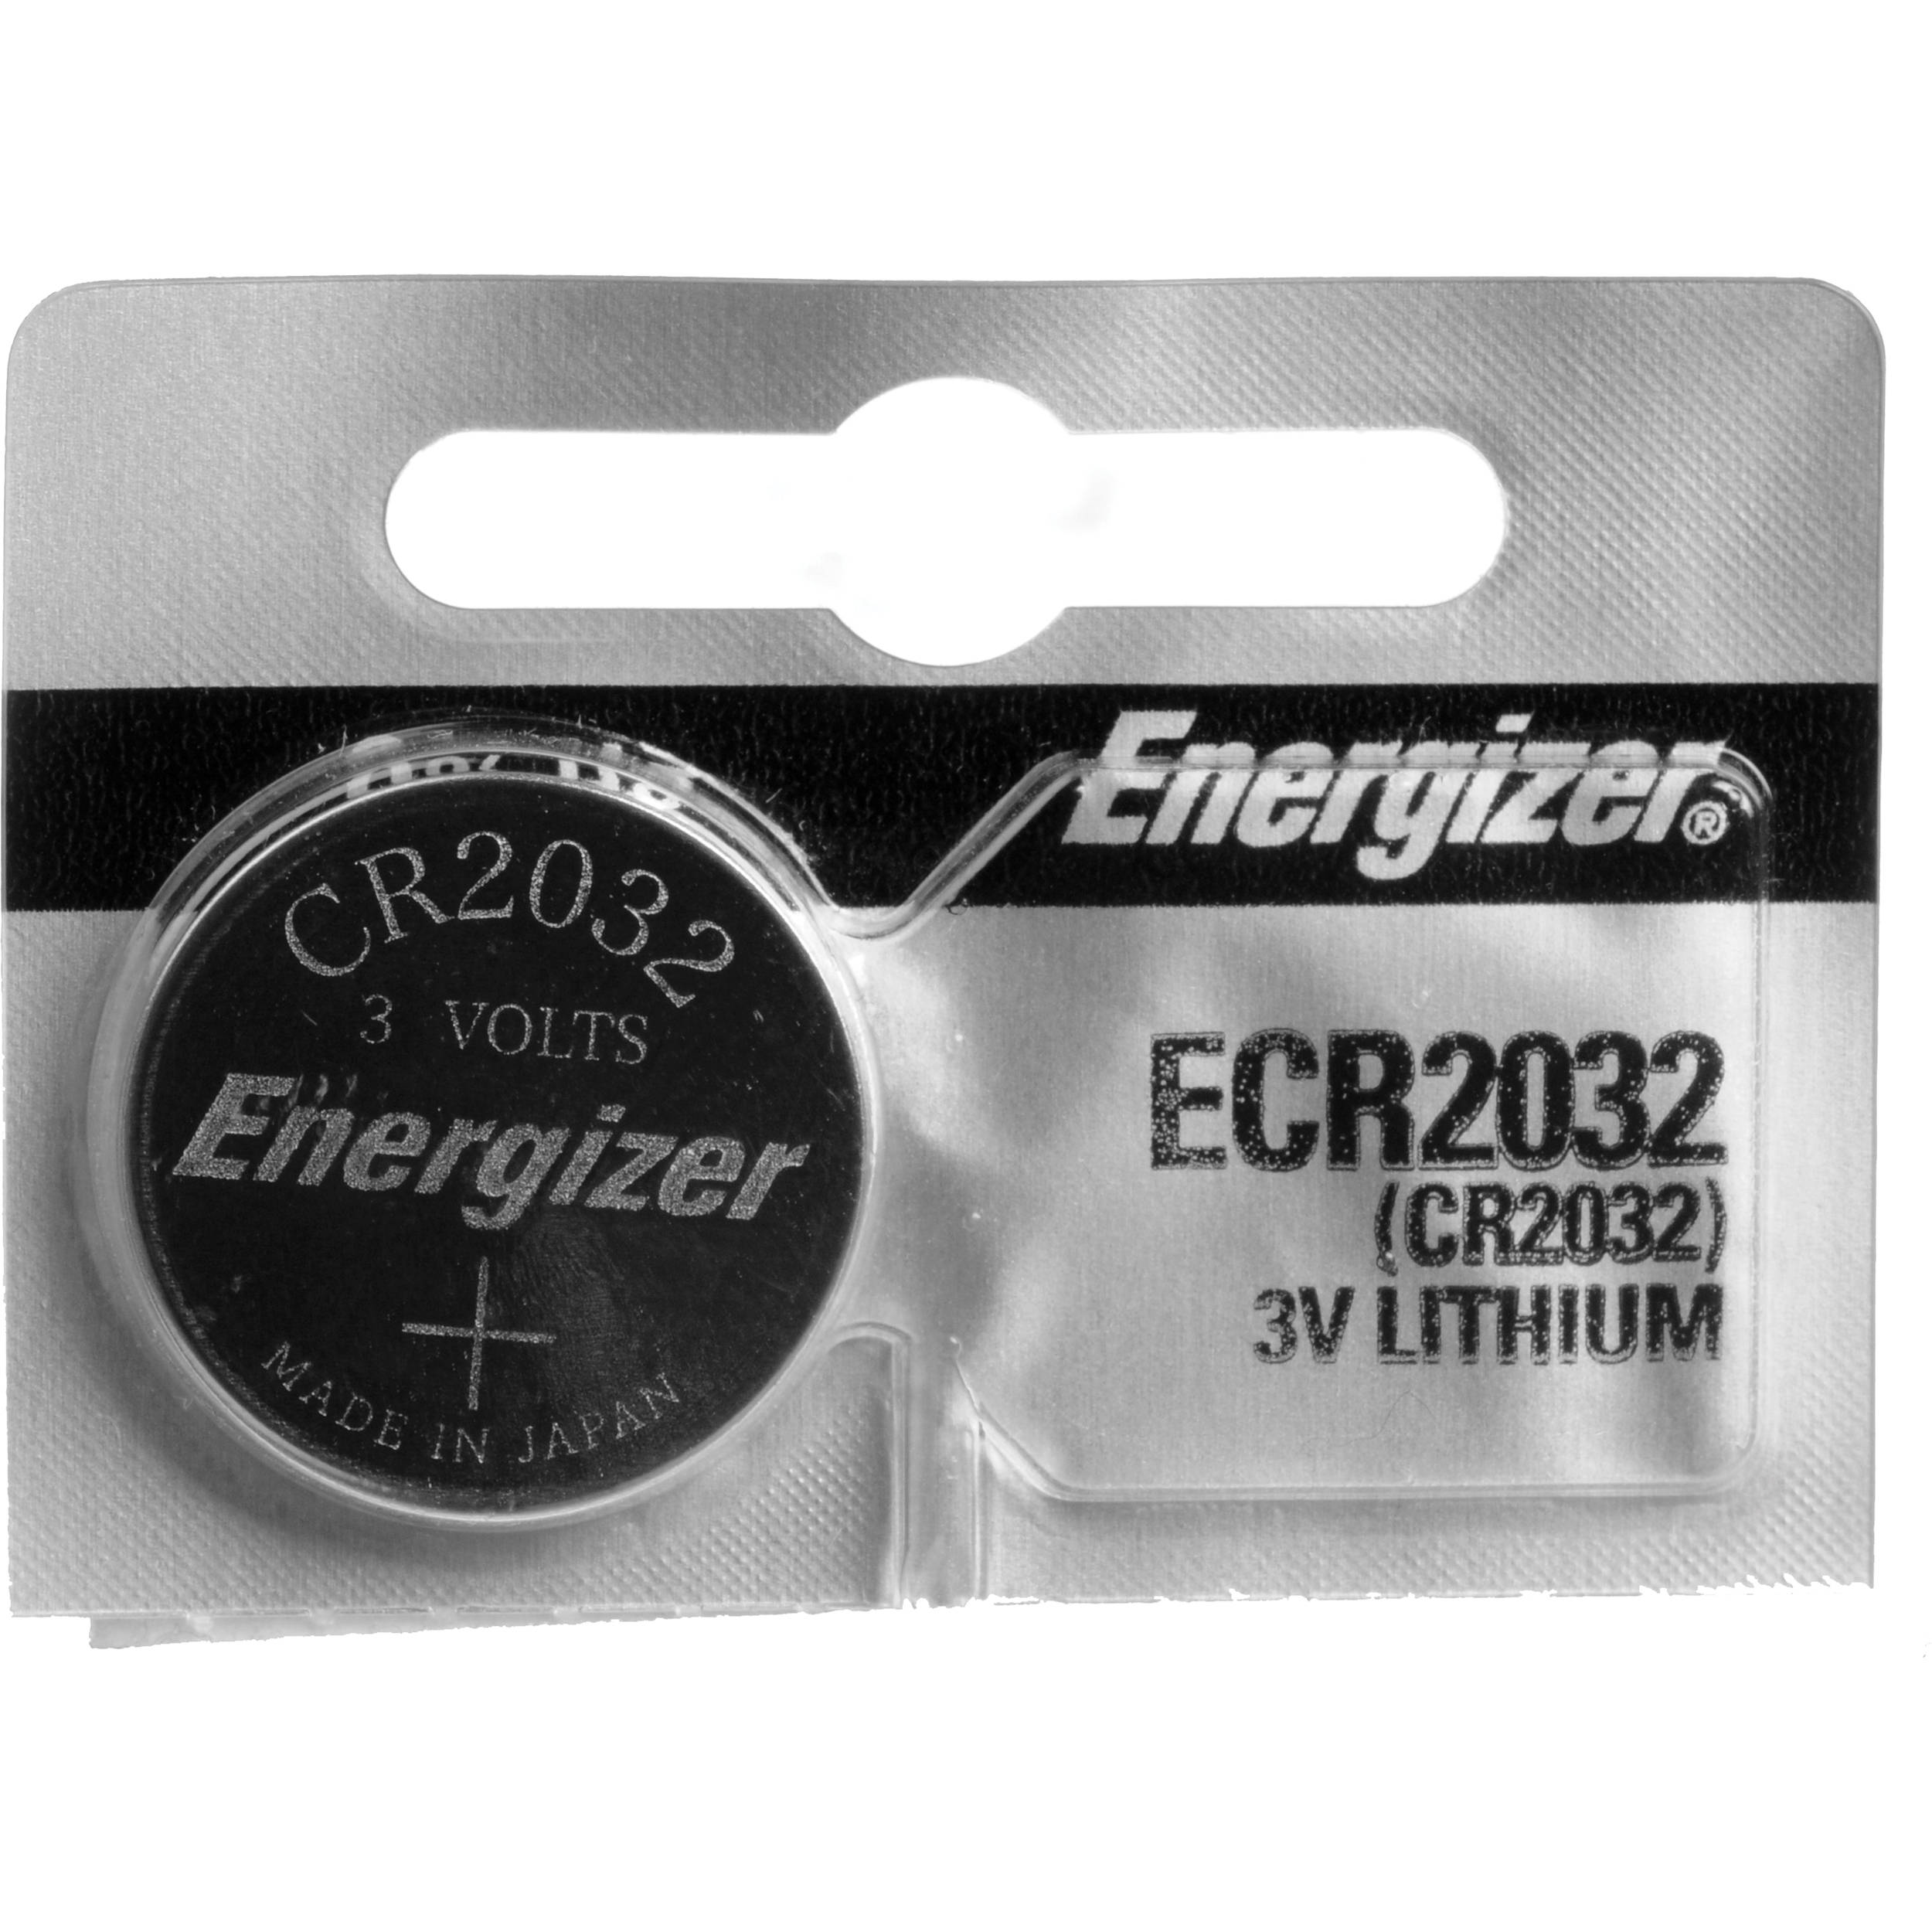 energizer cr2032 lithium coin battery cr2032 b h photo video. Black Bedroom Furniture Sets. Home Design Ideas